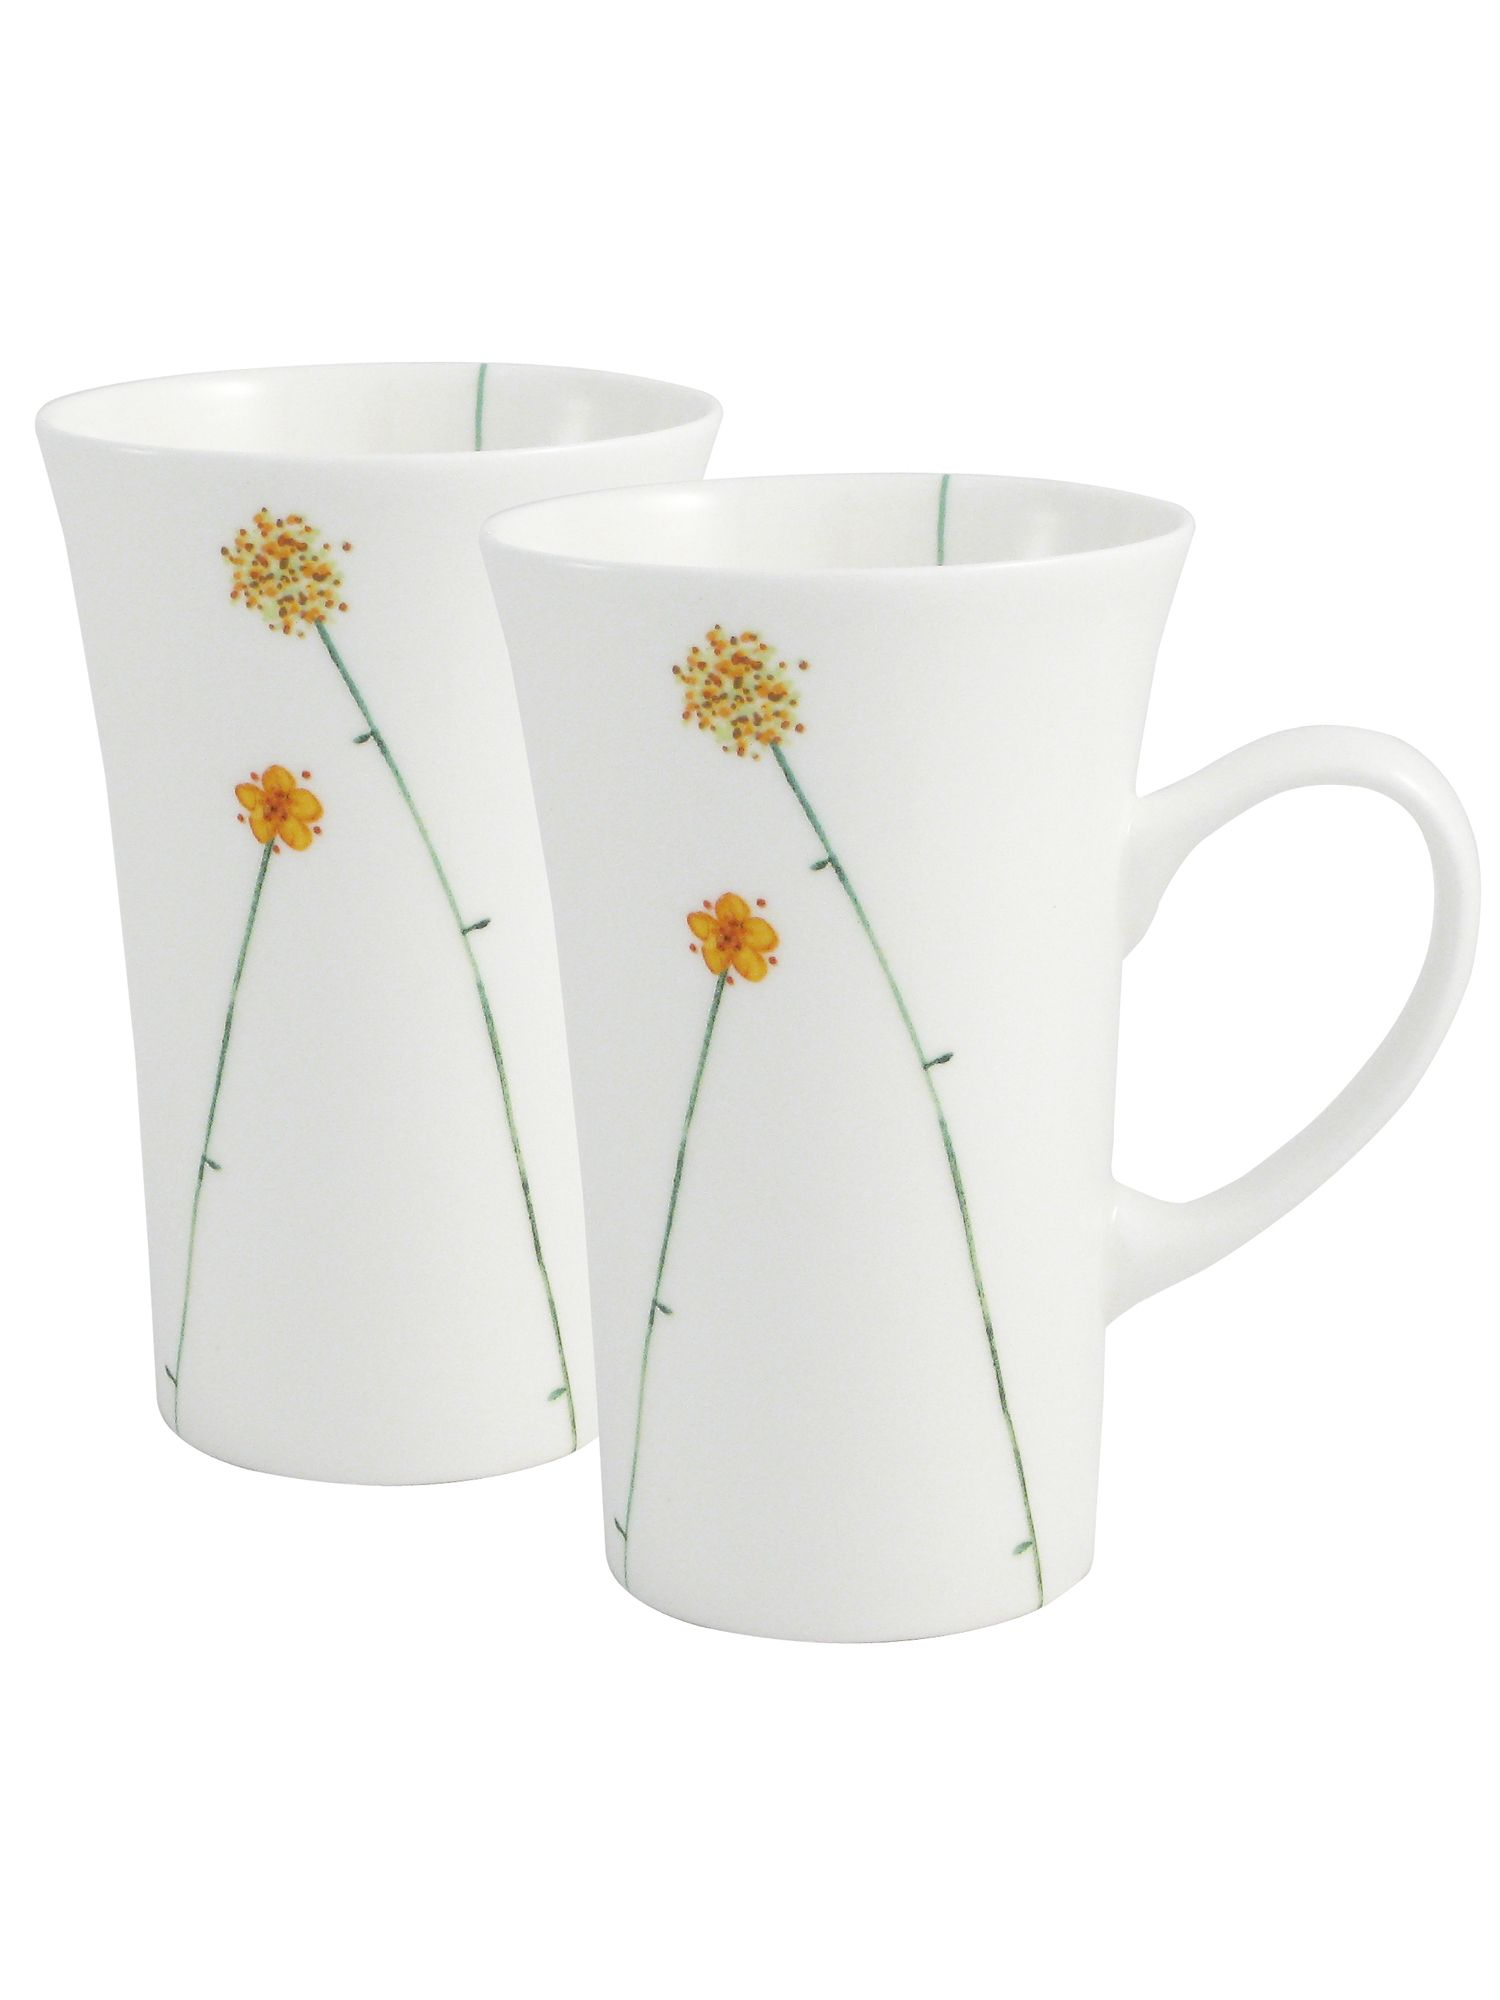 Aynsley Aynsley Daisychain two latte mugs